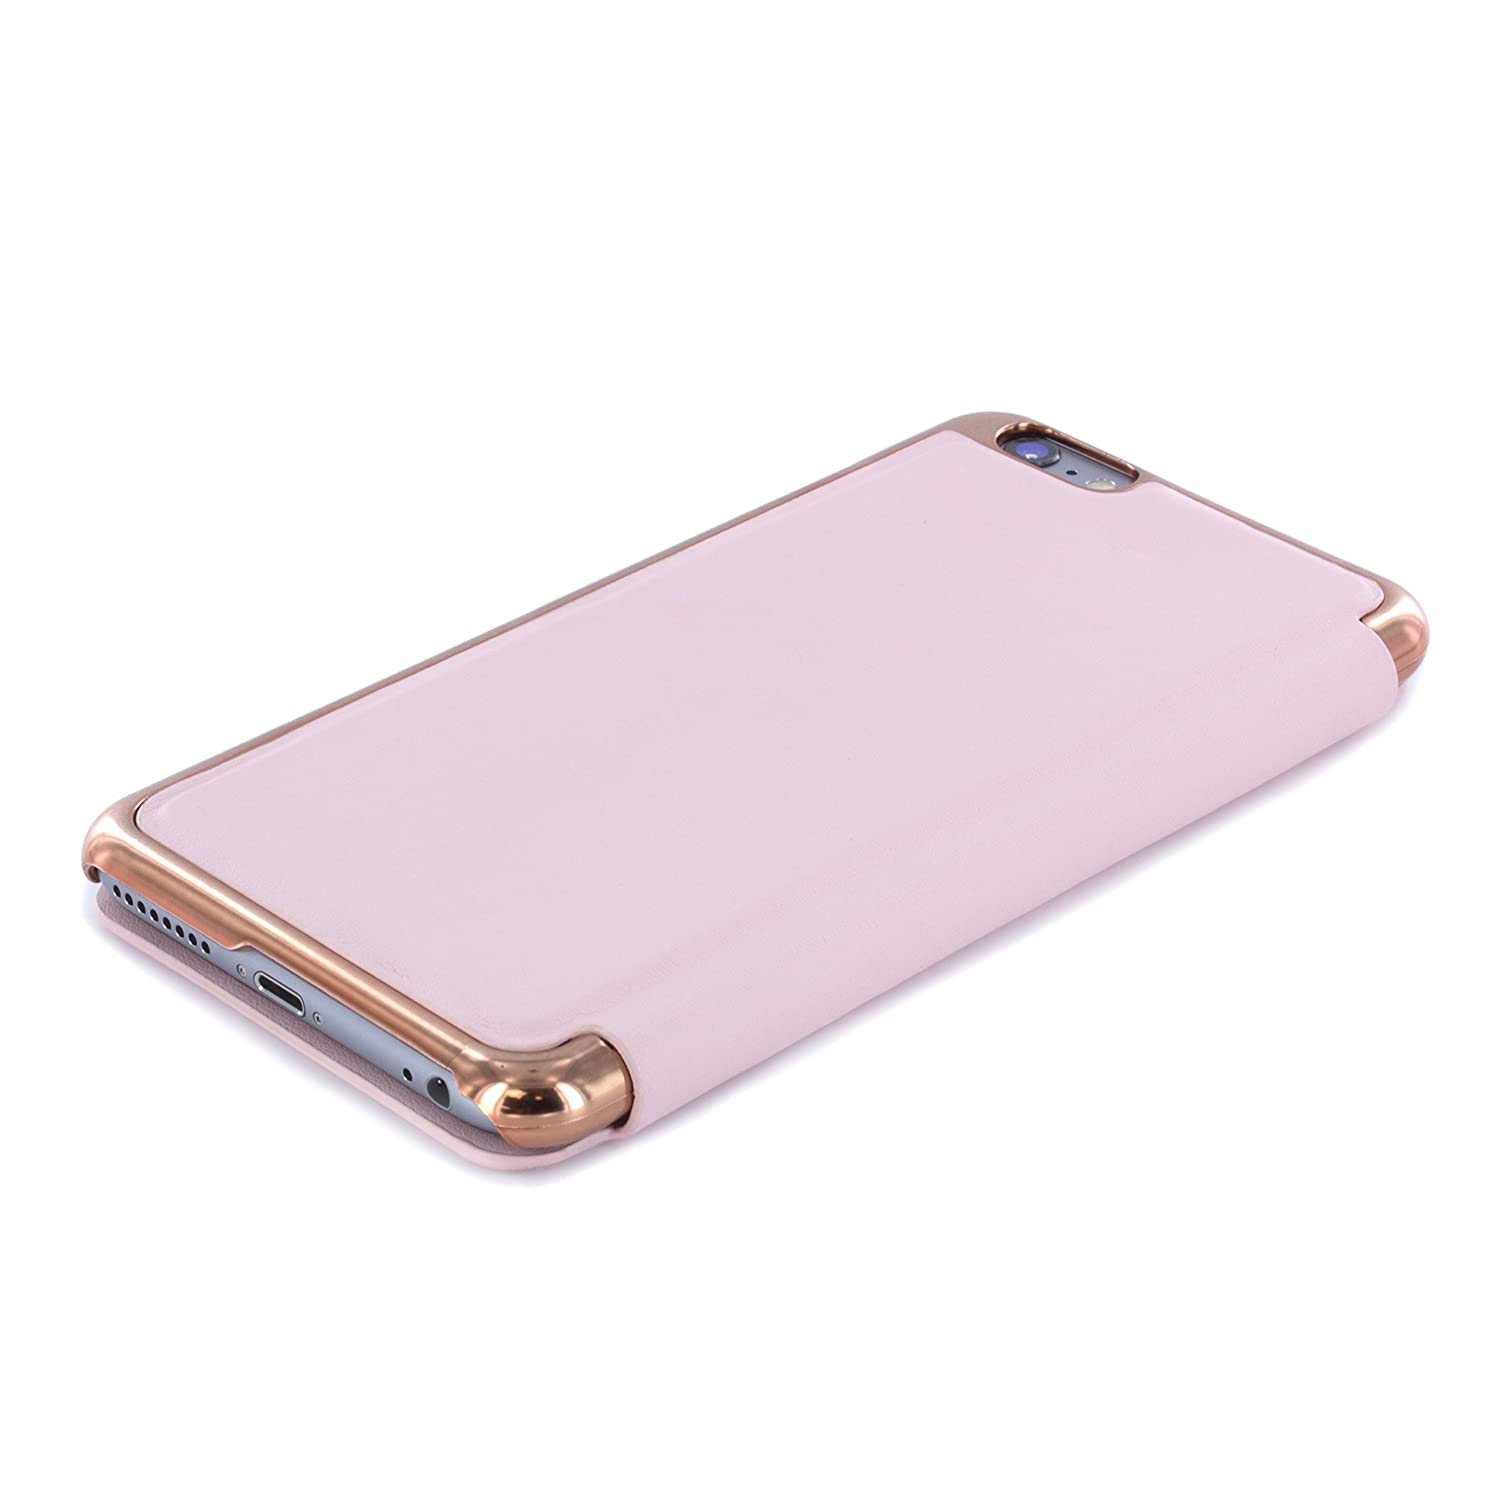 iphone 6 ted baker mirror case